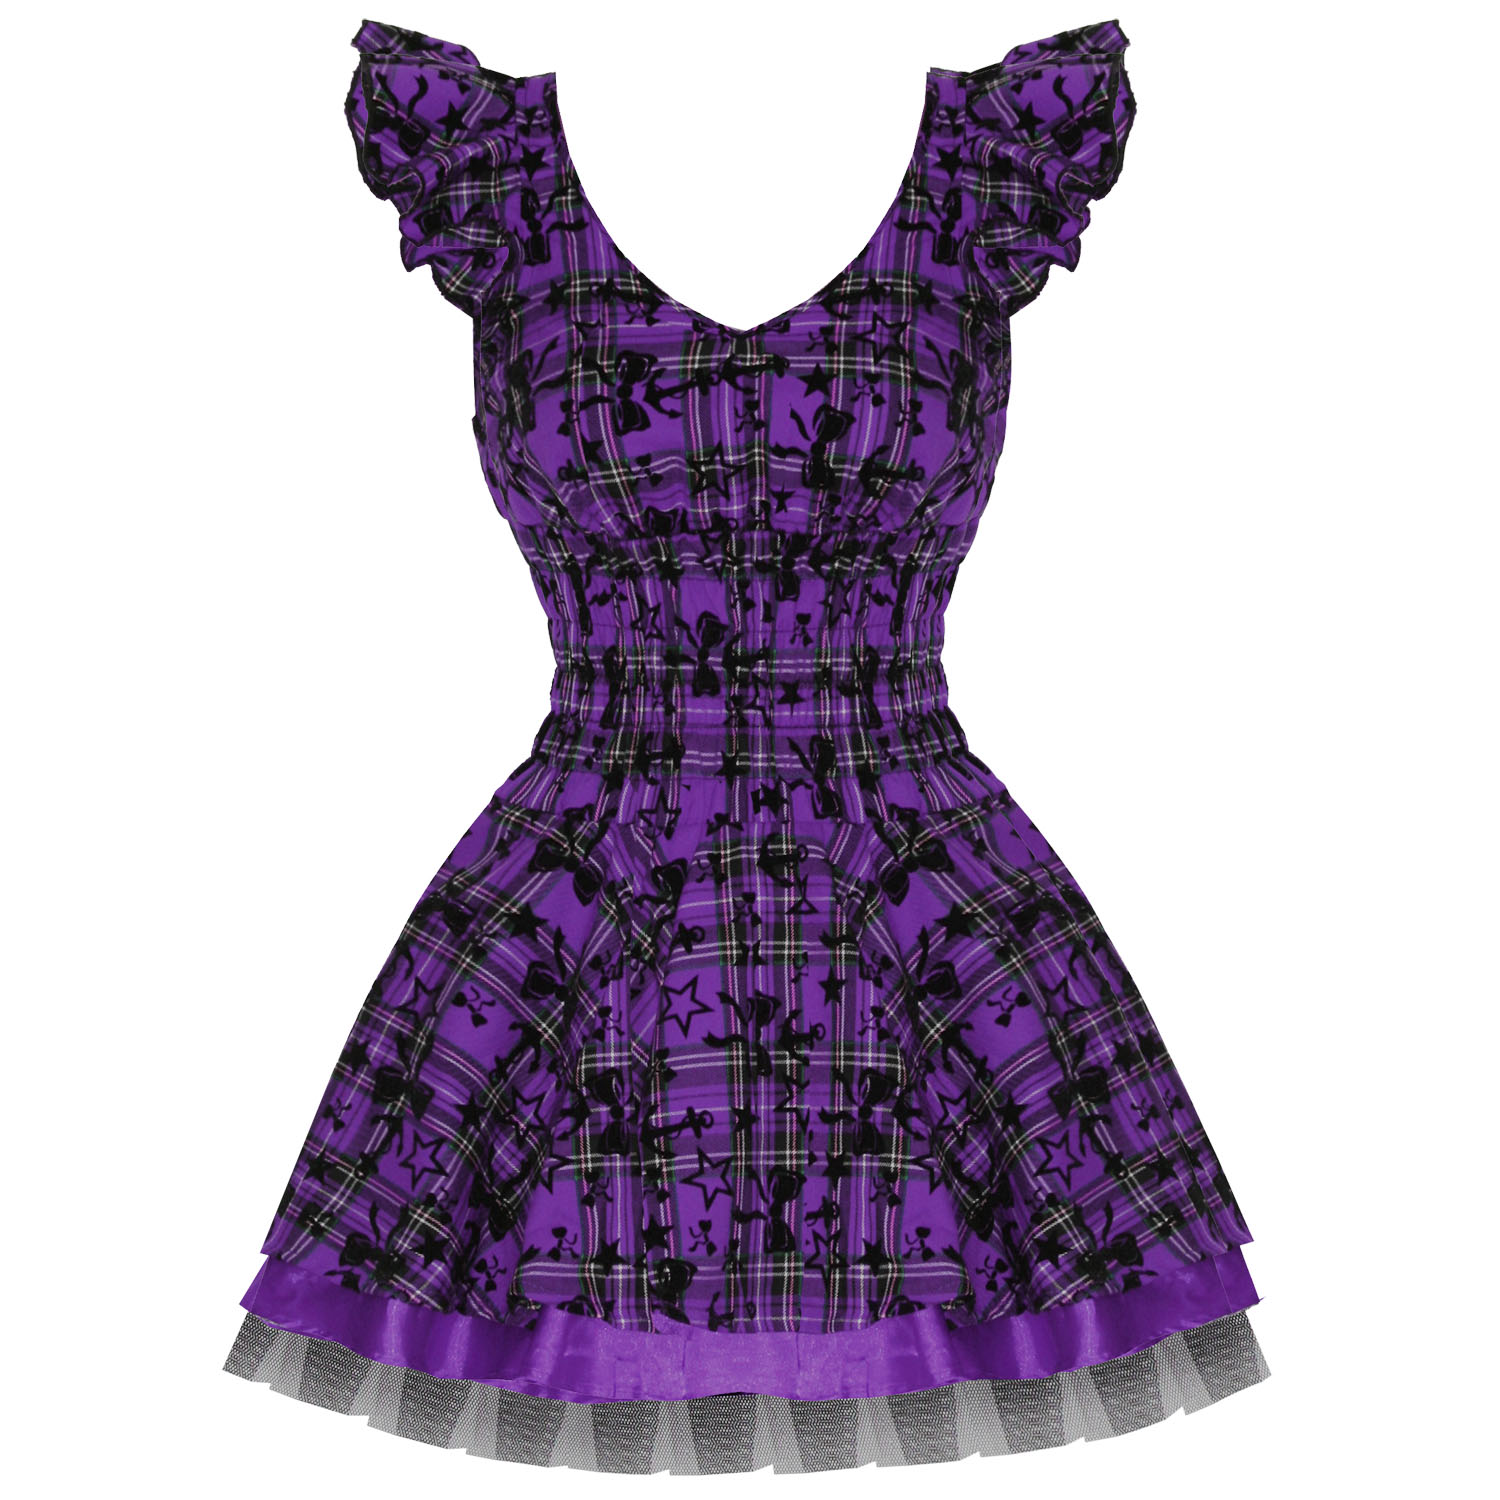 LADIES NEW HEARTS u0026 ROSES LONDON PURPLE TARTAN TATTOO PUNK EMO PROM PARTY DRESS | eBay